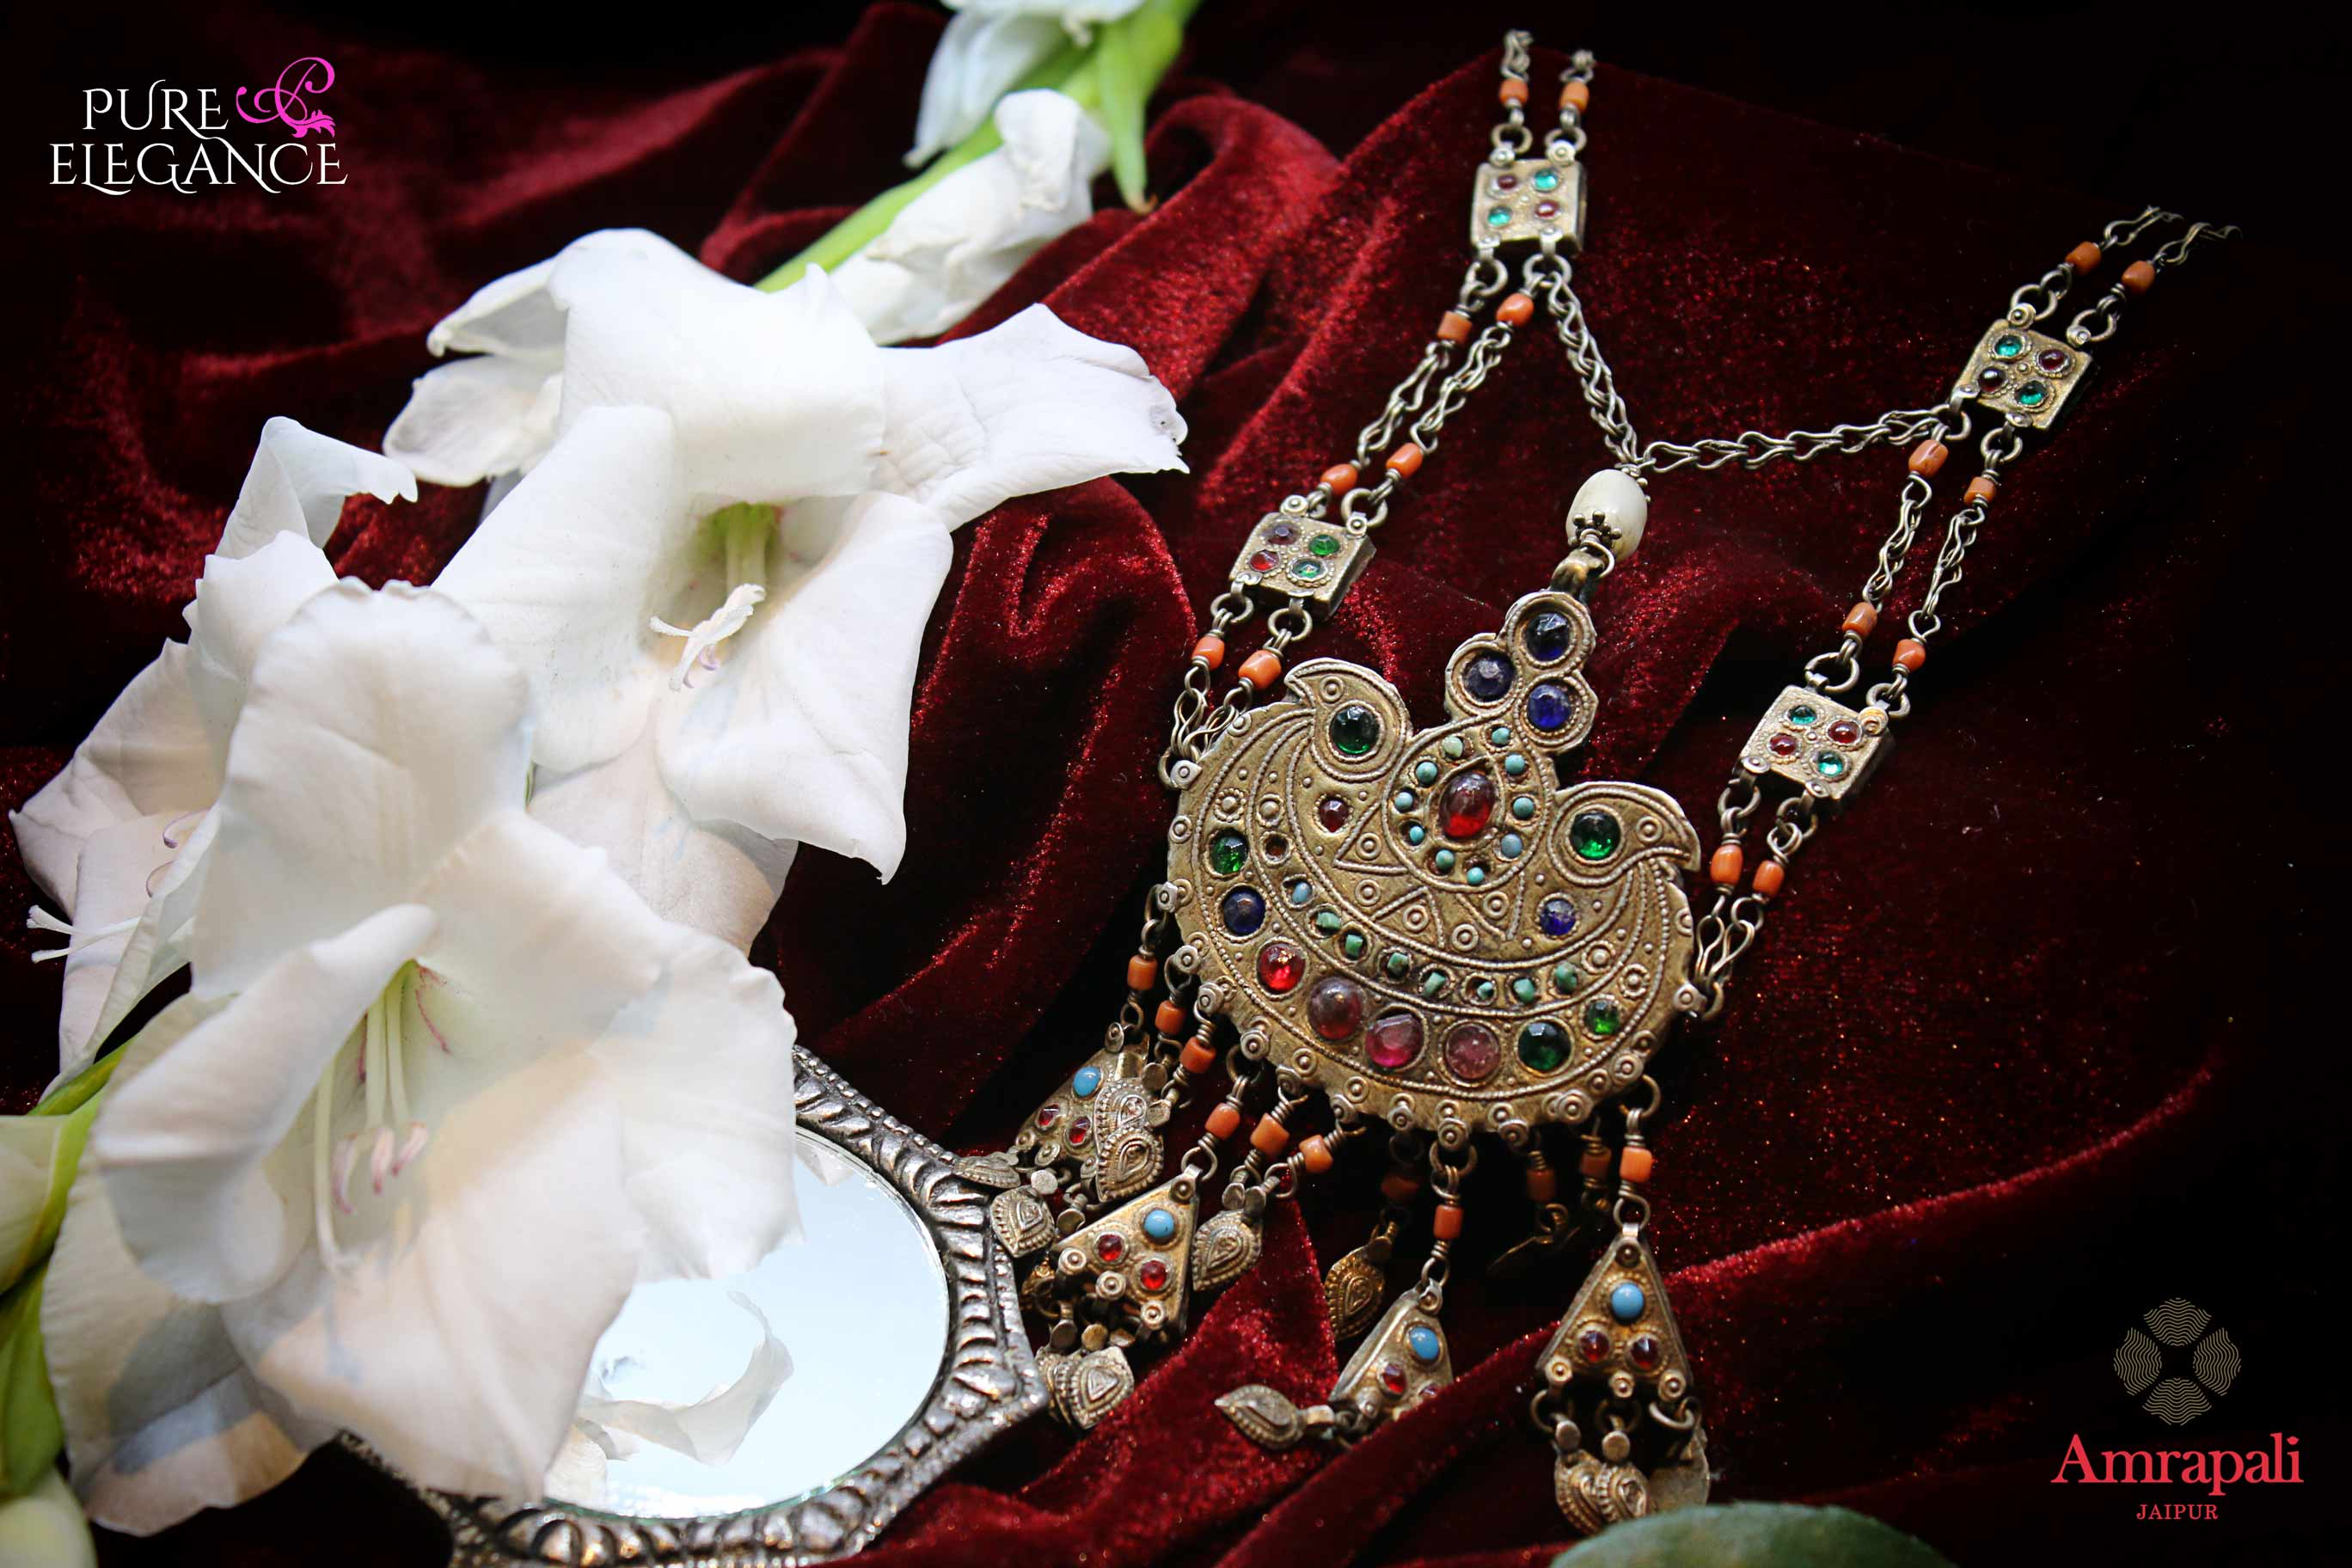 Buy Amrapali silver banjara necklace online in USA with colored glass and beads. Get your hands on an alluring range of Indian silver necklaces from Amrapali in USA. Add extra edge to your ethnic look with ethnic silver jewelry available at Pure Elegance Indian fashion store in USA.-flatlay